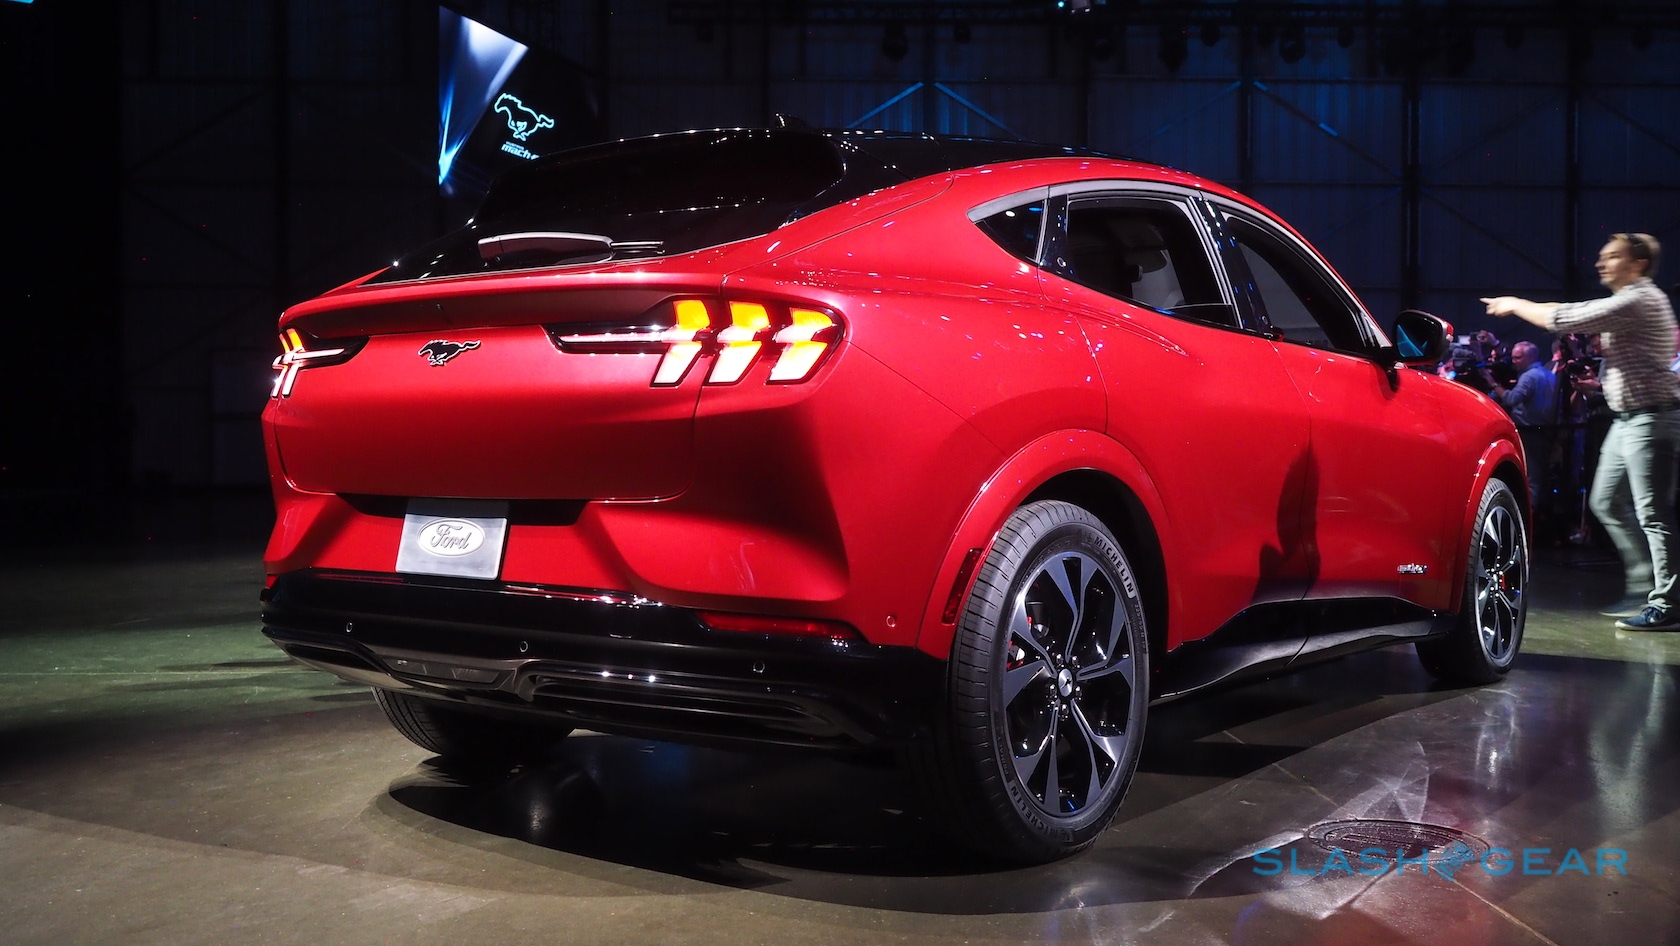 Ford Mustang Mach E First Look Electric Suv Takes On Tesla Slashgear